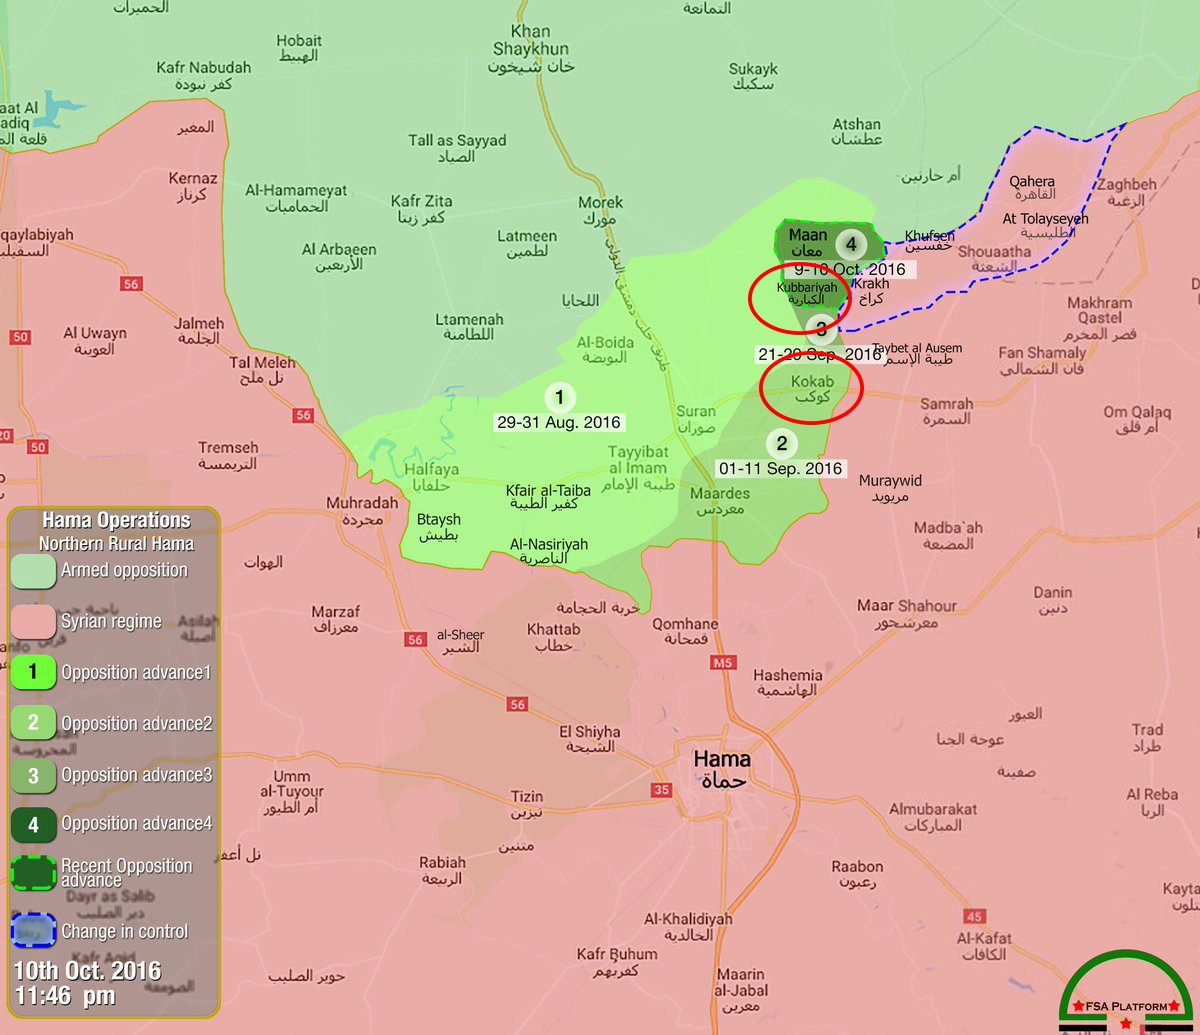 Heavy Clashes in Northerh Hama as Govt Force Advancing on Terorrists' Positions